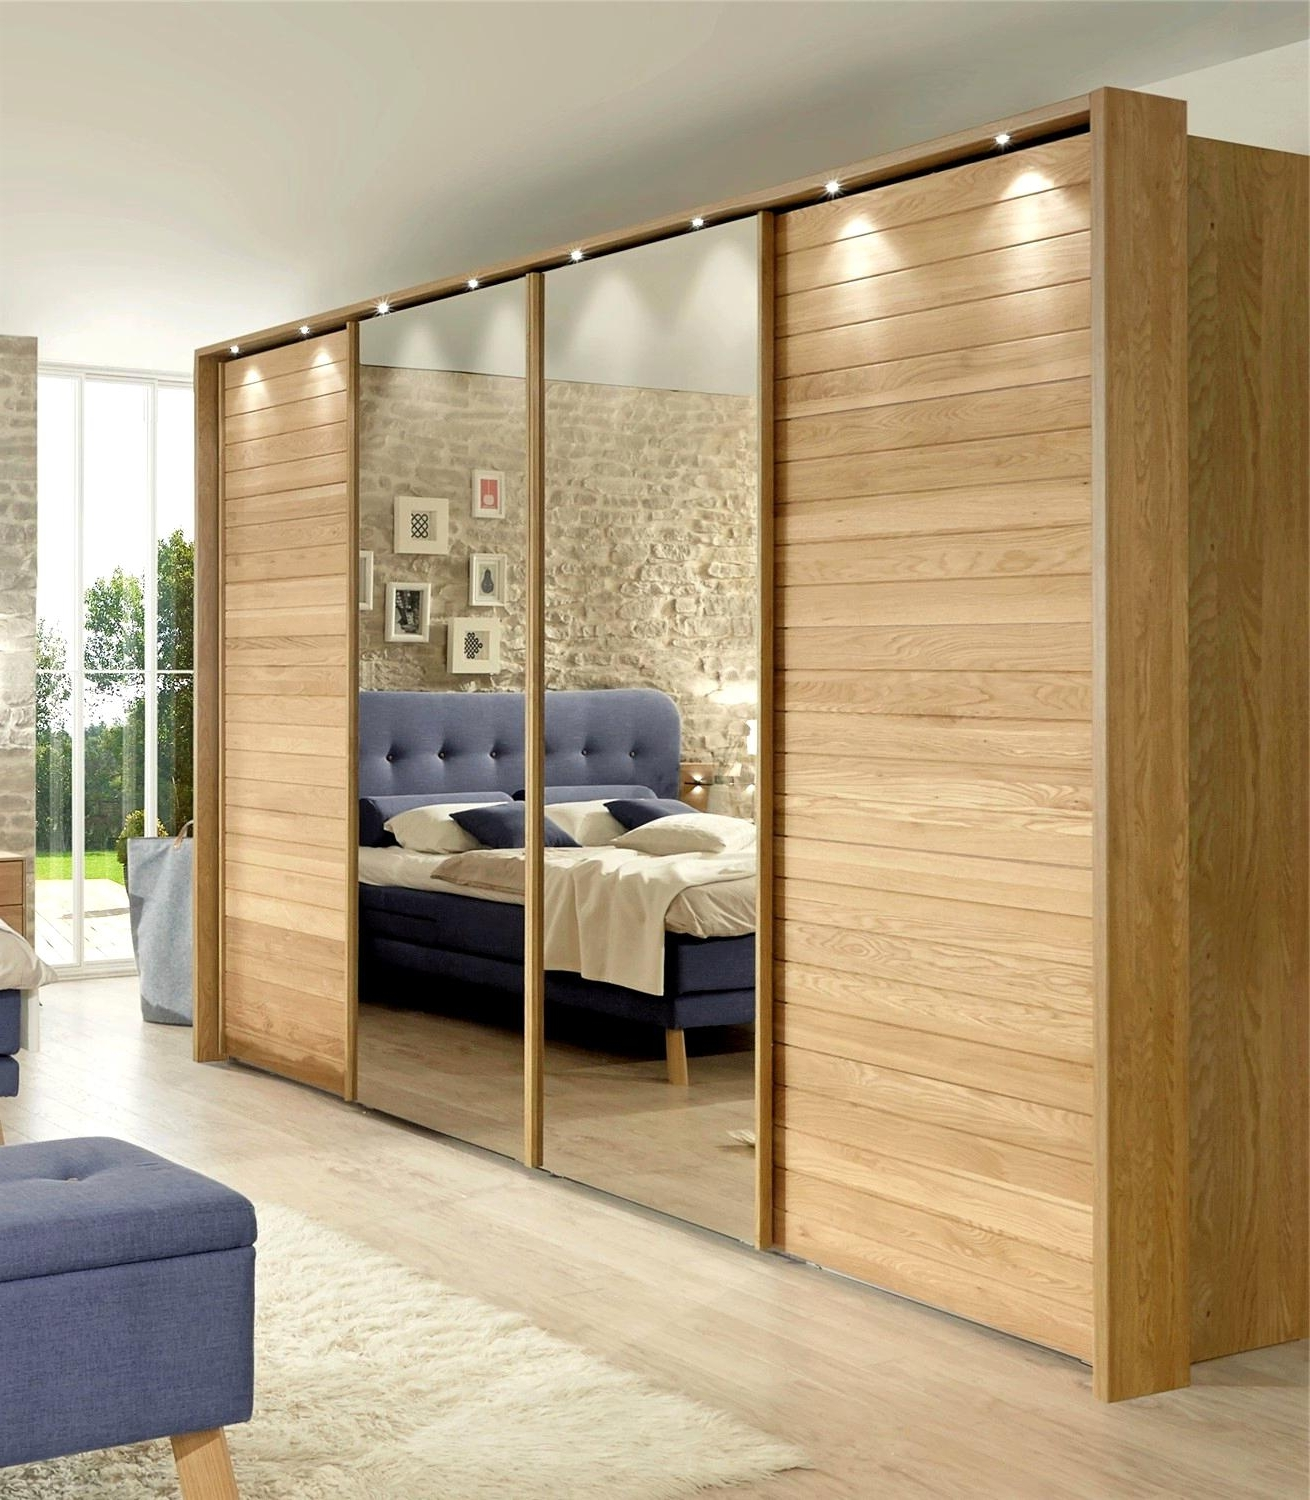 Splendid Sliding Door Wardrobe Slim Wardrobes With Sliding Doors Intended For Widely Used Sliding Door Wardrobes (View 14 of 15)